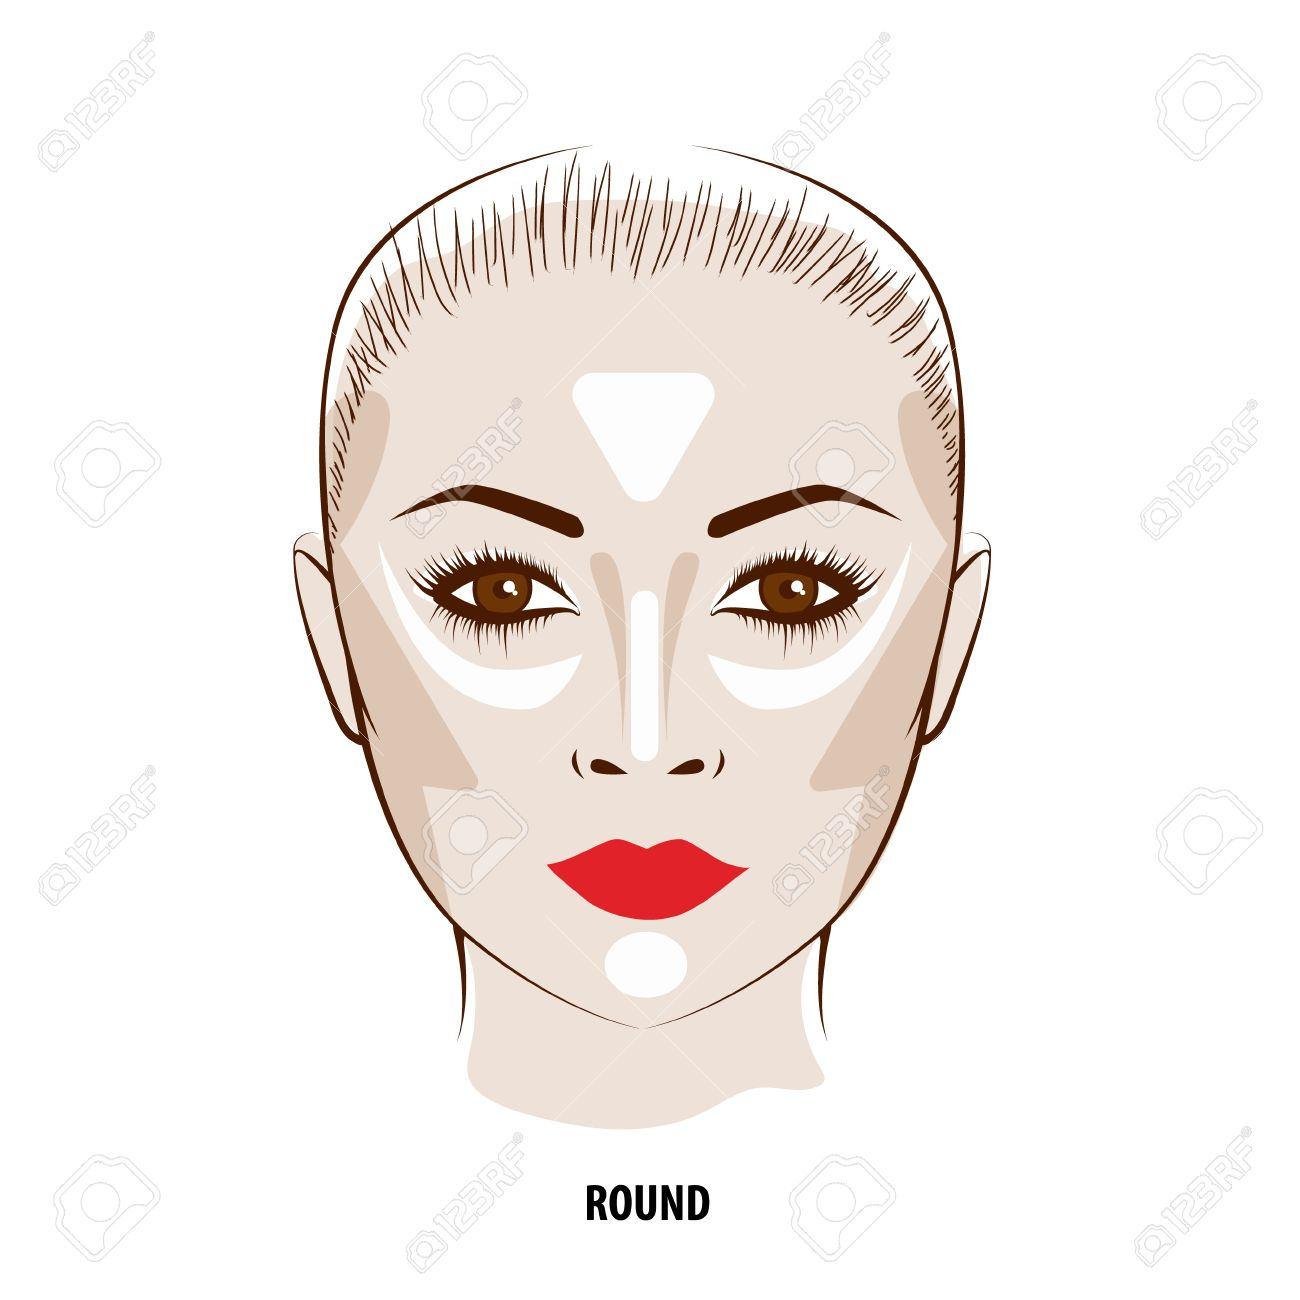 Contour and Highlight makeup. Contouring round face make-up. Fashion illustration - 57913762